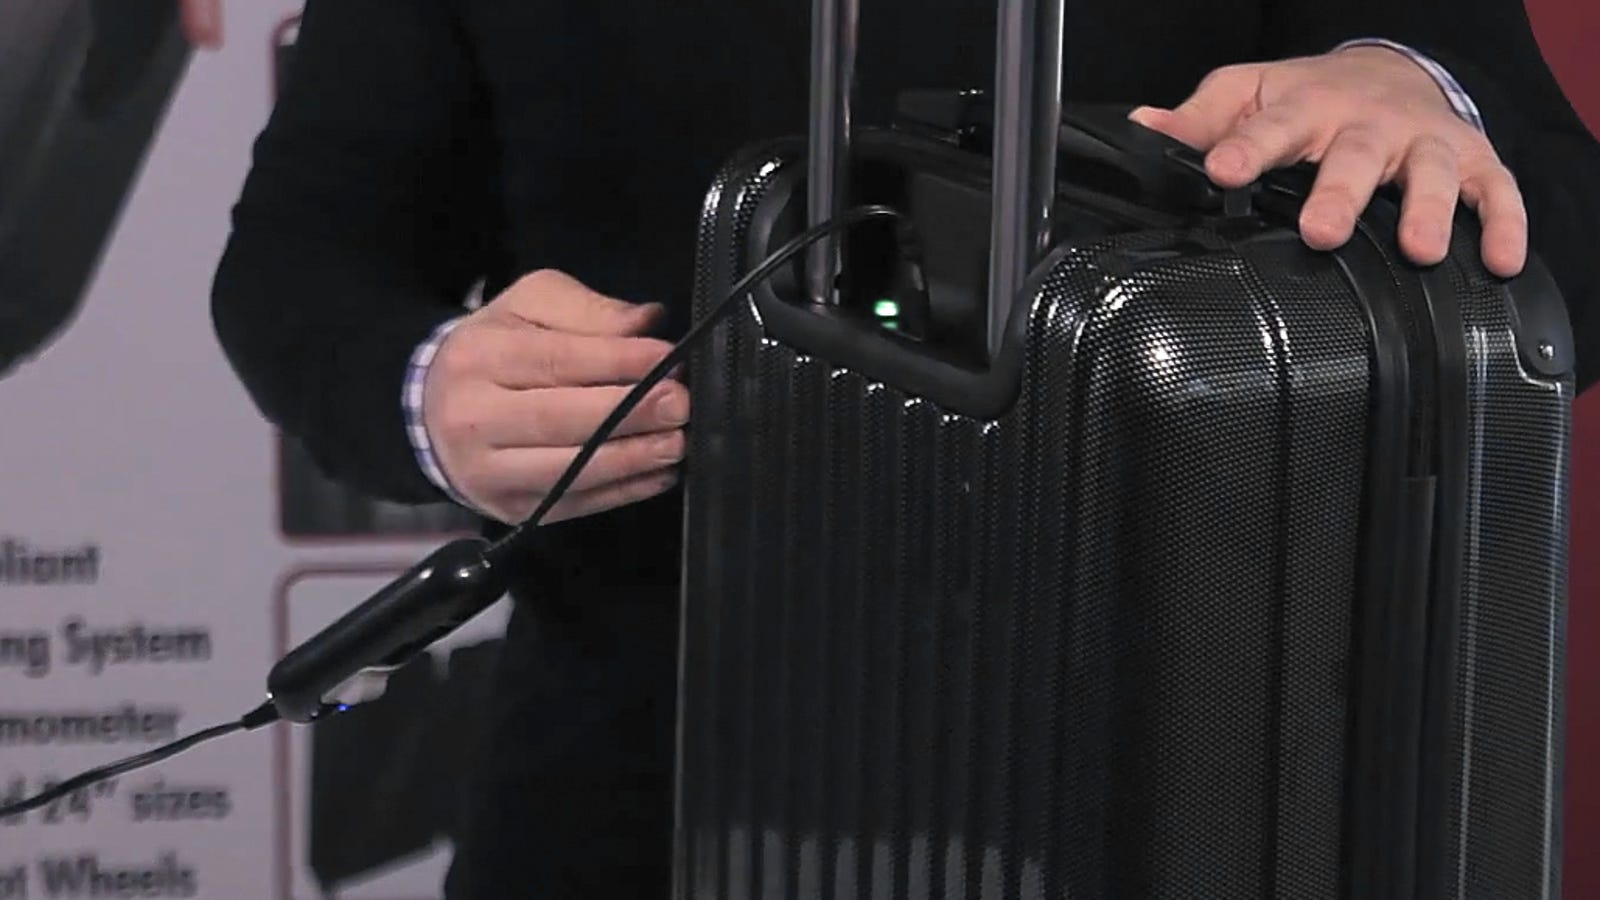 Heating Elements Inside this Suitcase Kill Stowaway Bed Bugs